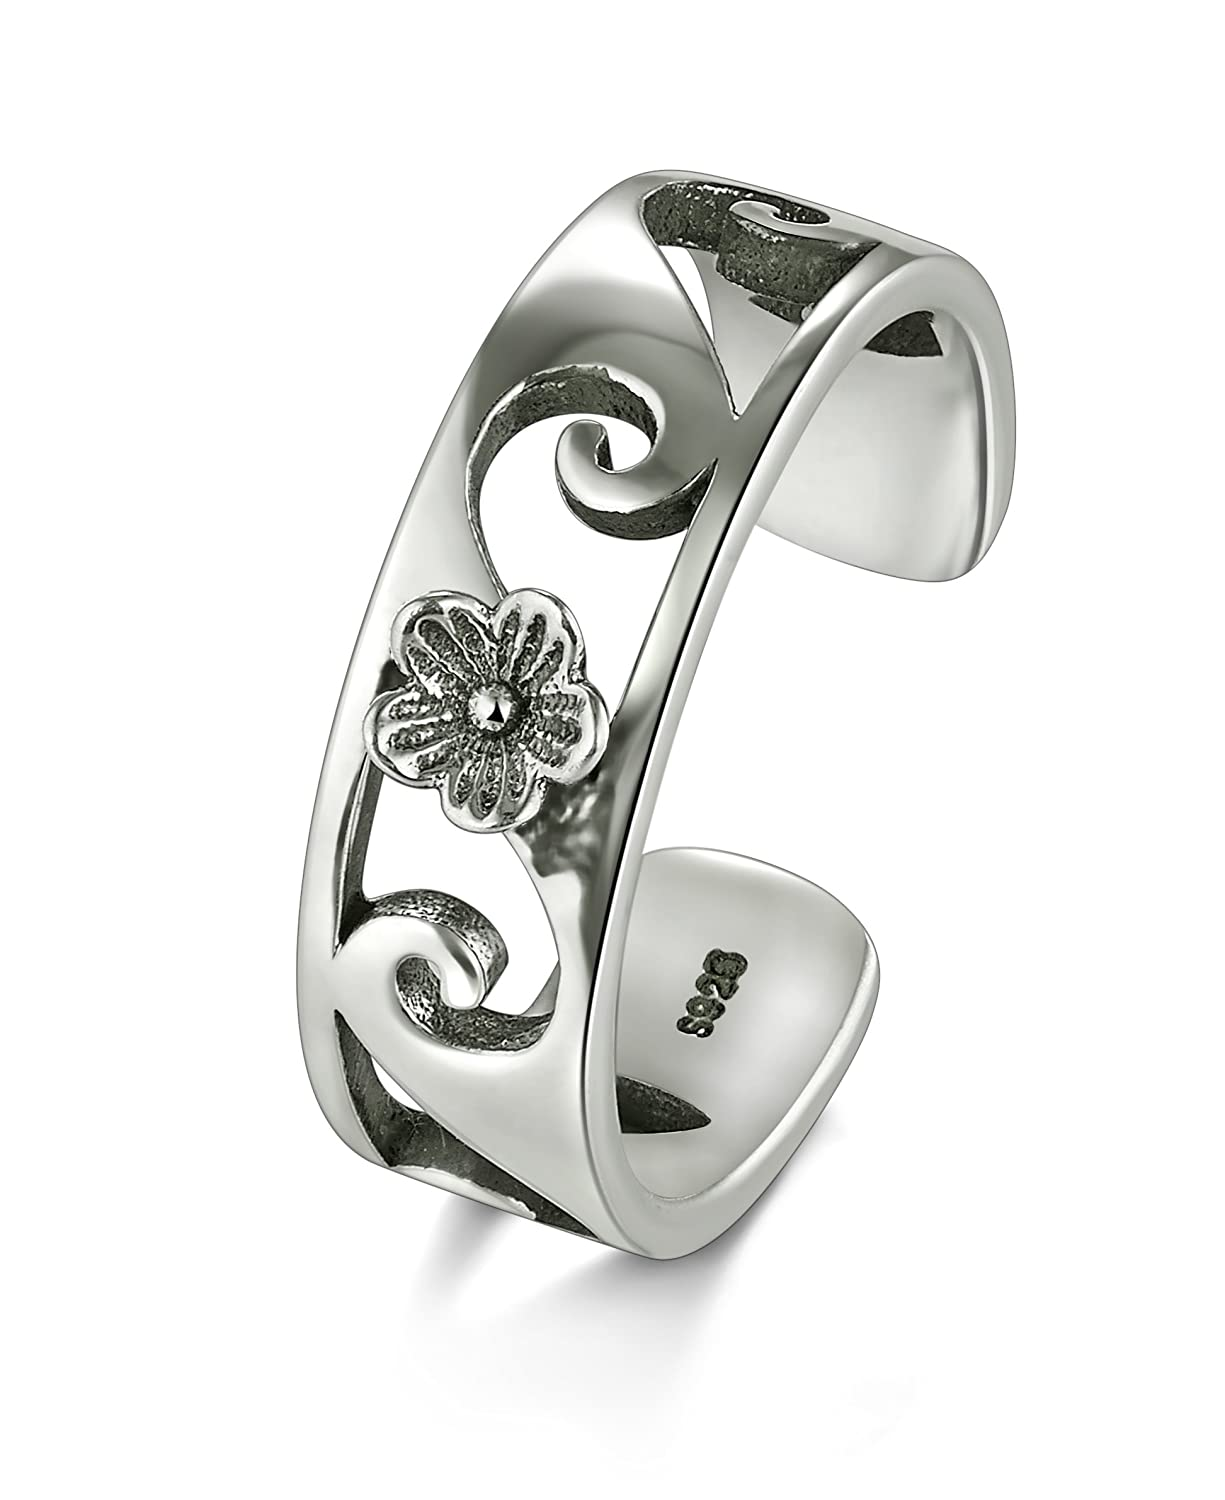 BORUO 925 Sterling Silver Toe Ring, Plumeria Flower Hawaiian Adjustable Band Ring BRC Creative Corp. B071YCD7WJ_US